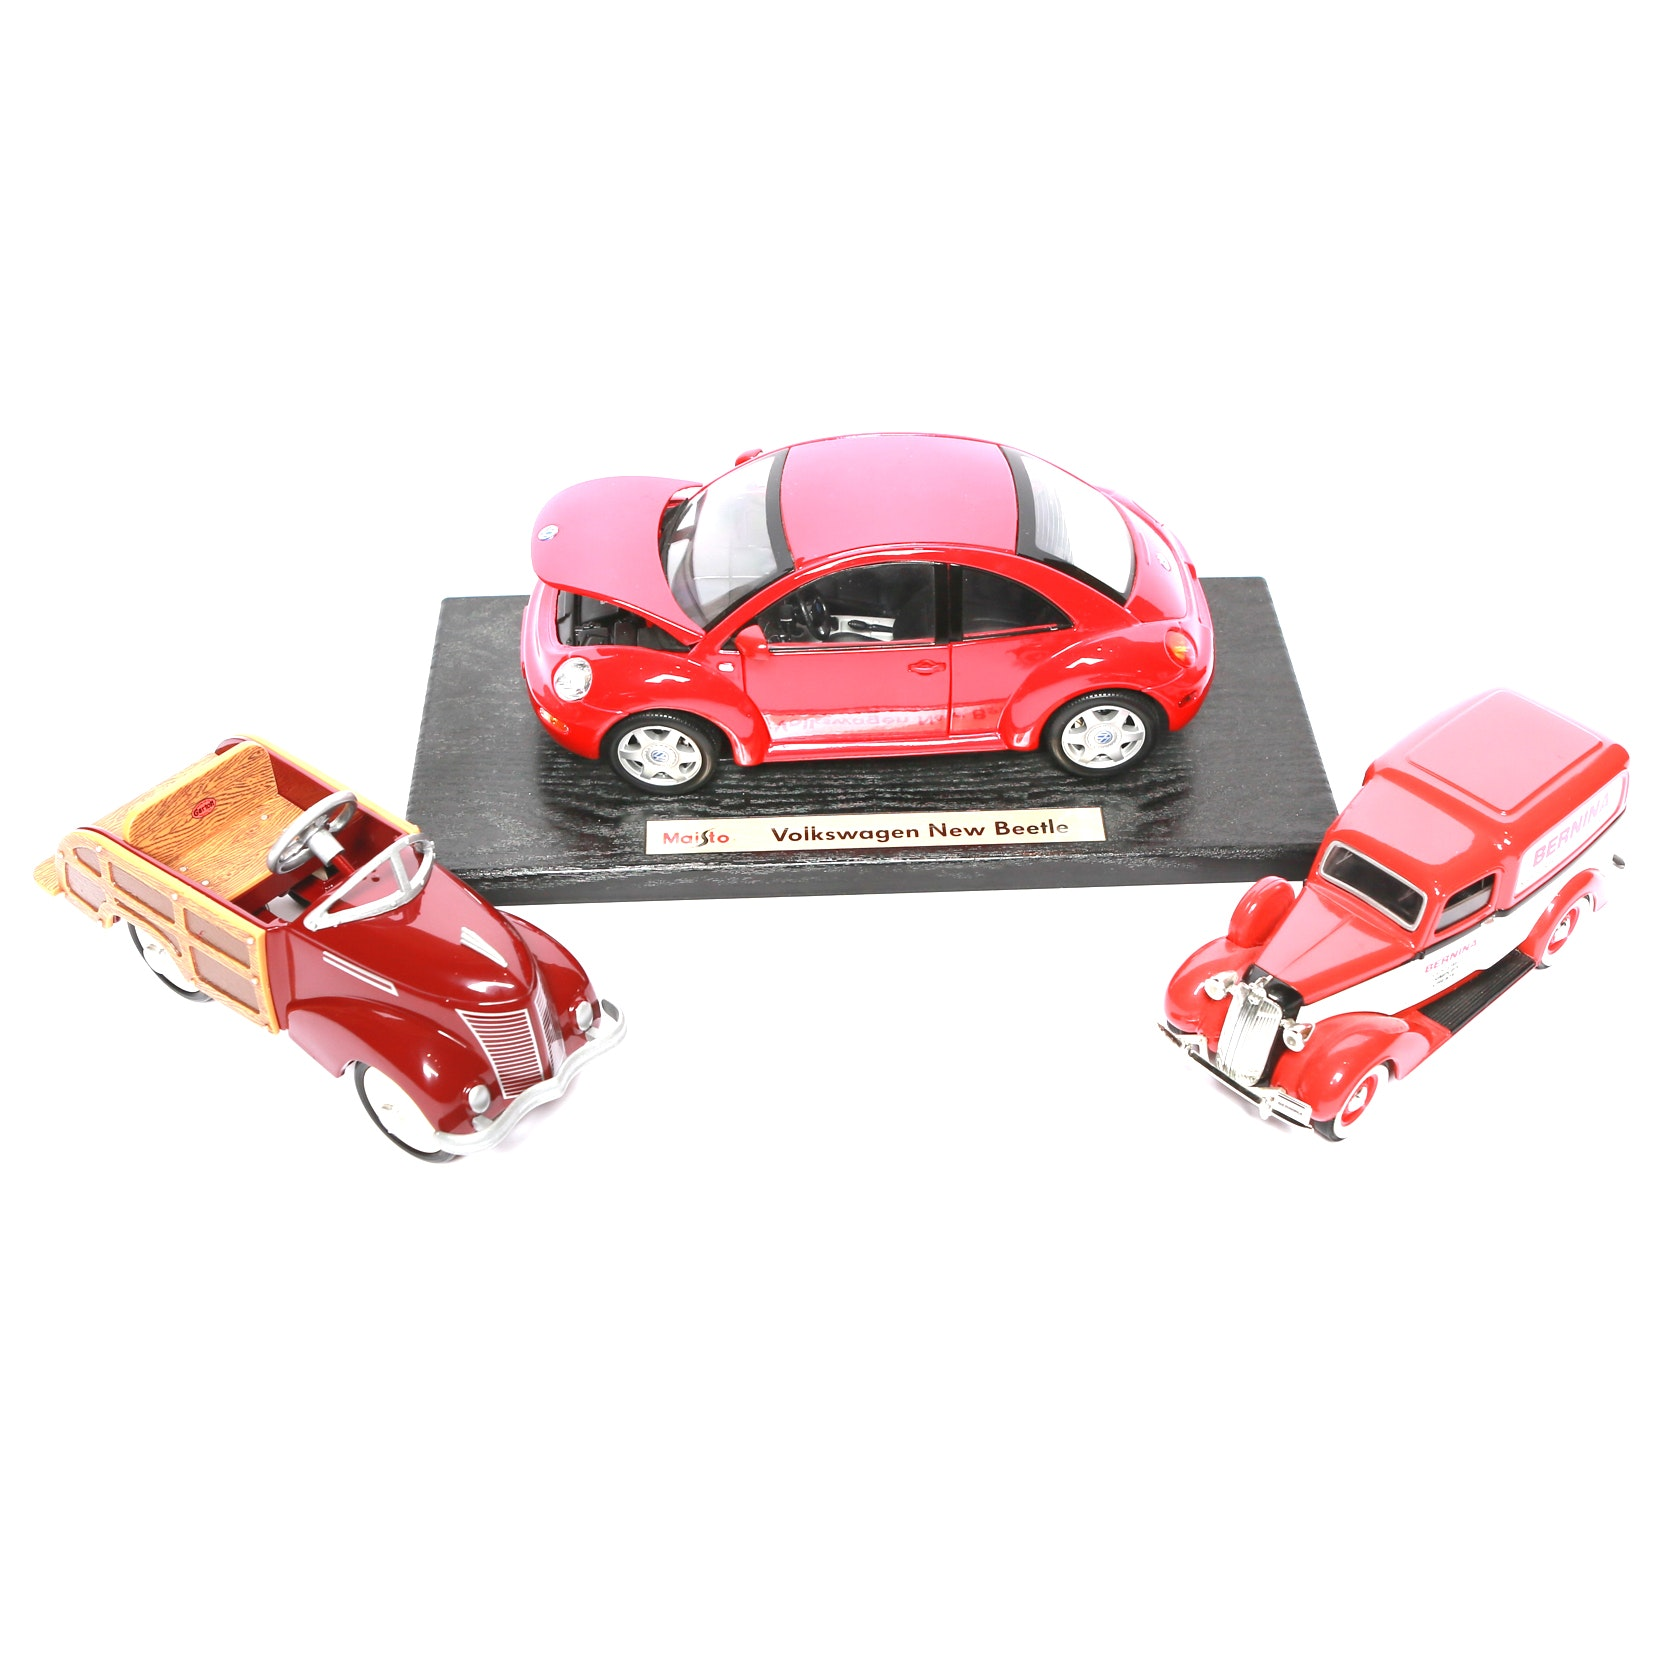 Limited Edition Cars: Limited Edition Toy Cars : EBTH